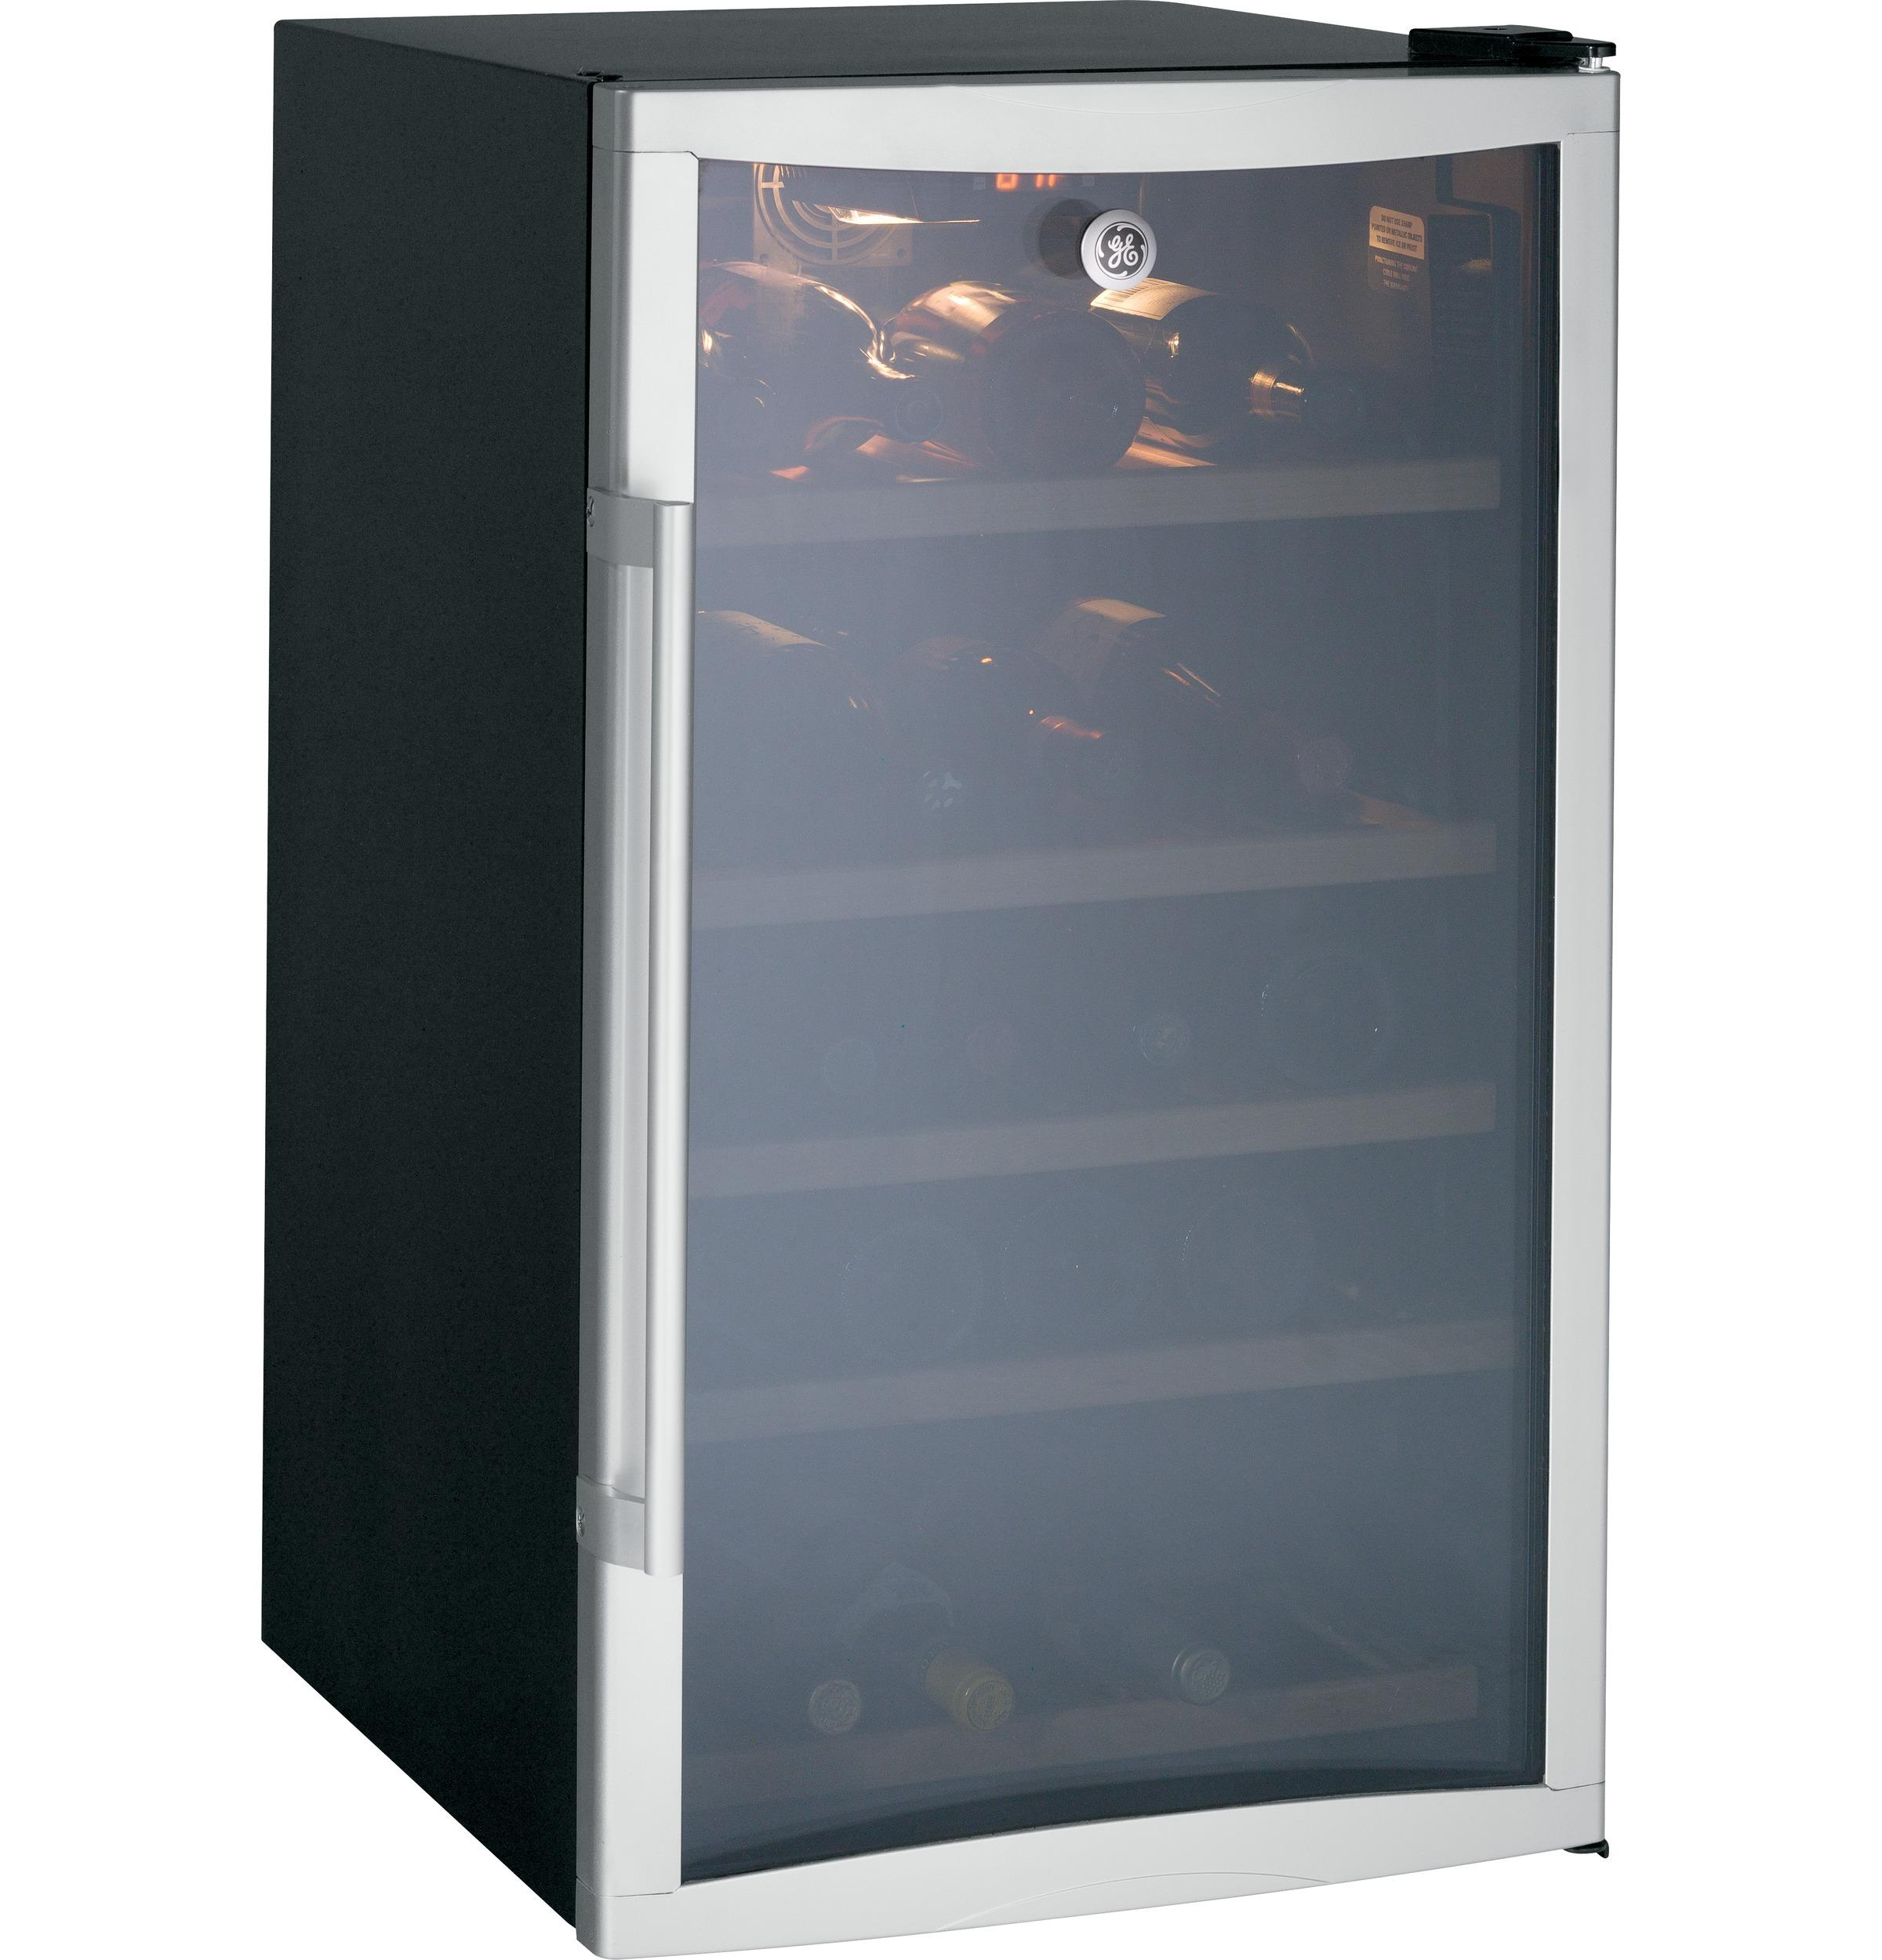 GE(R) Wine or Beverage Center